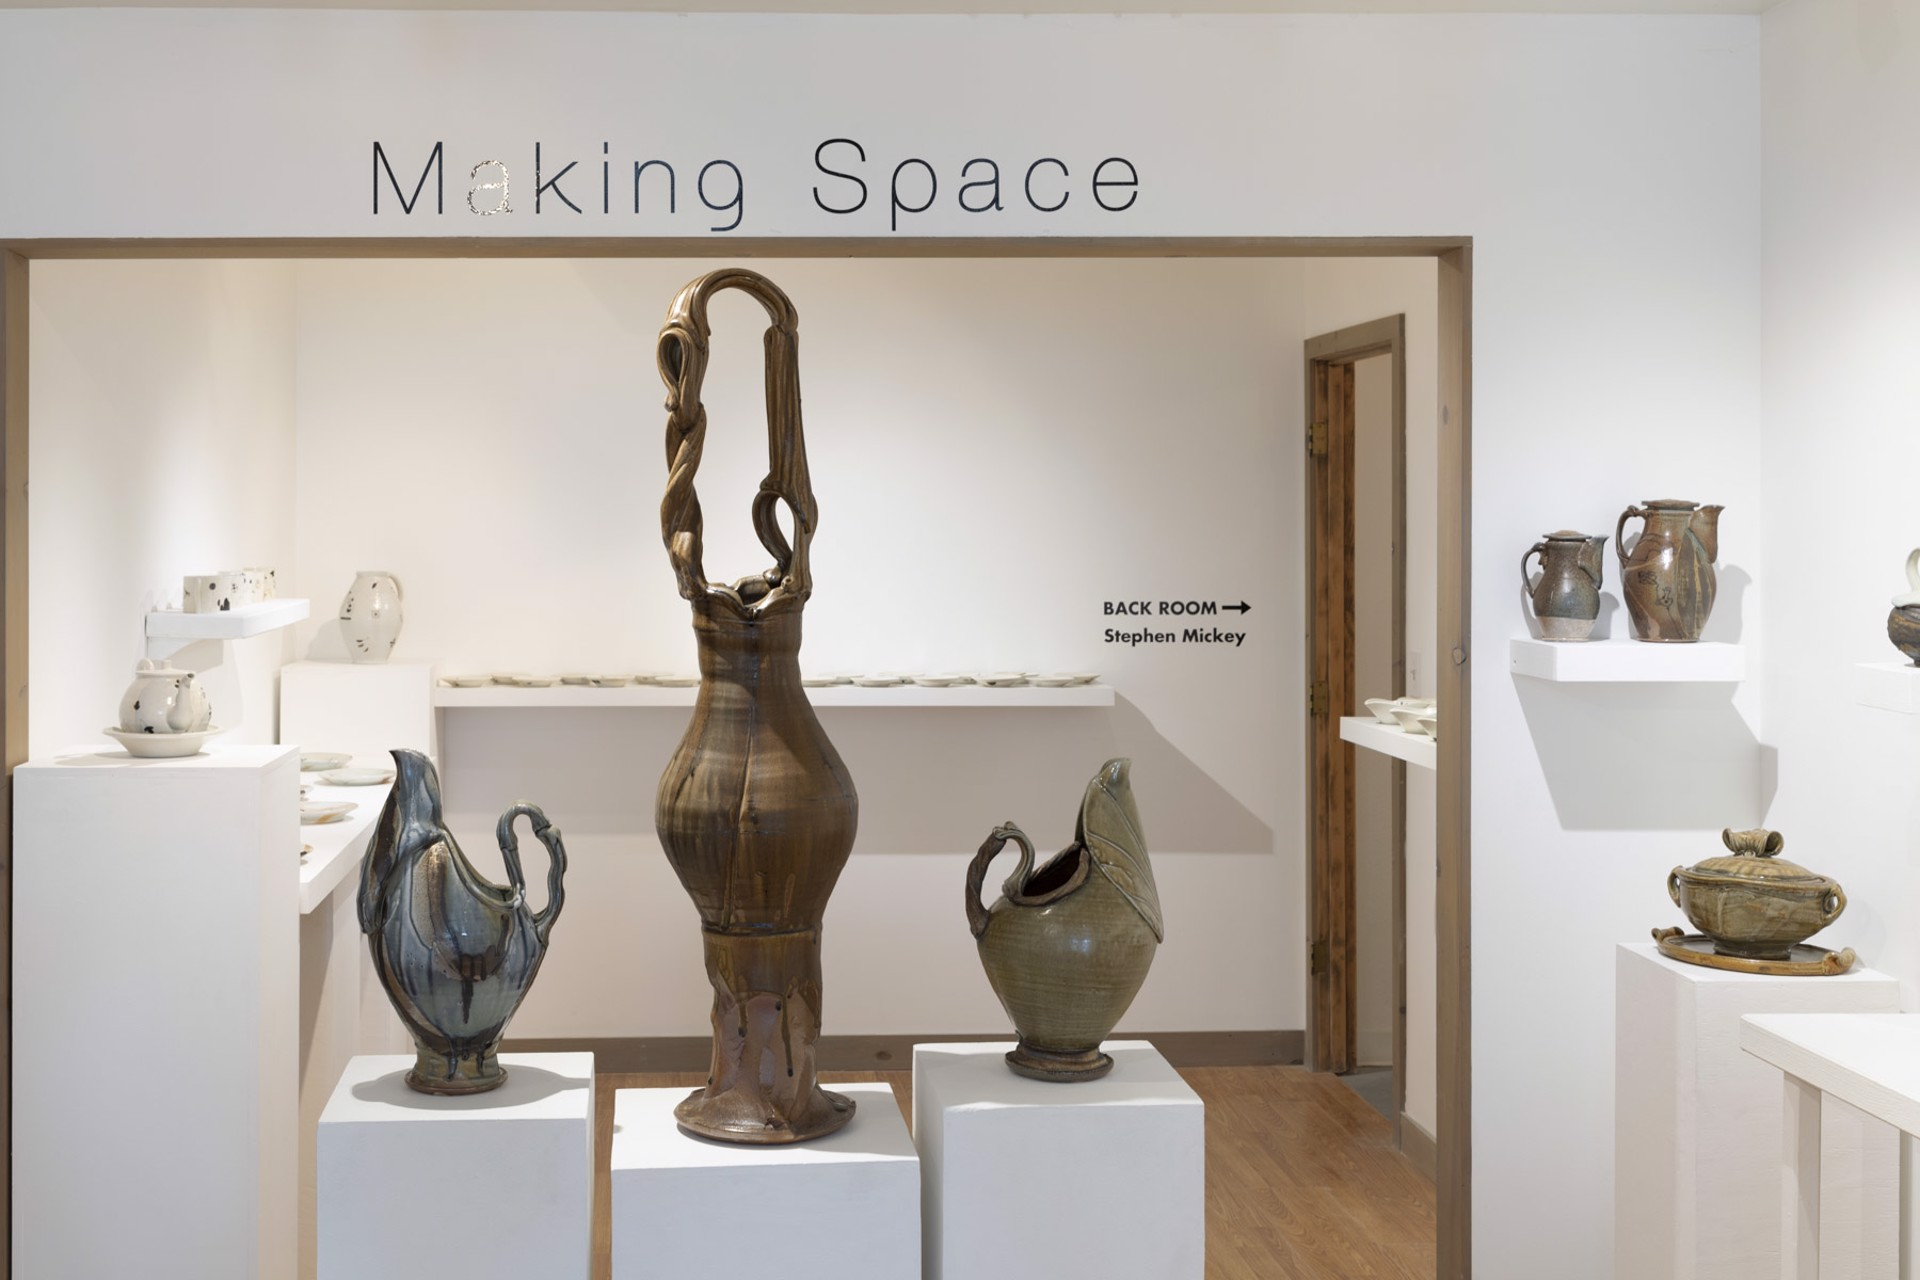 Making Space; Aug 2-31, 2019 by Josh DeWeese